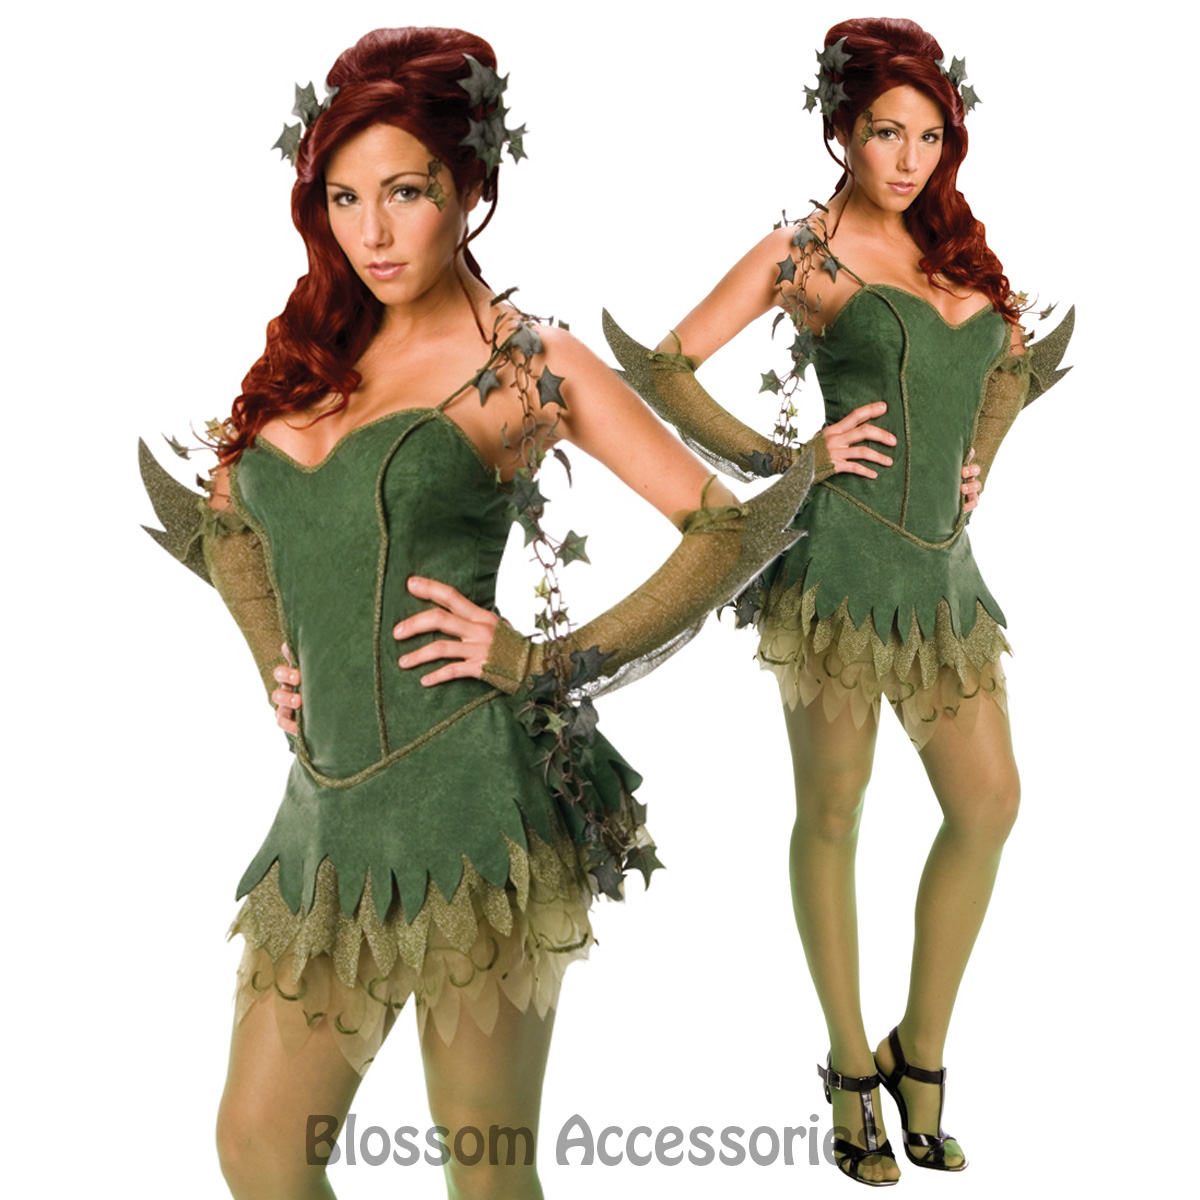 Female Villian Costumes & Top-14-beauty-villain-costume-designs